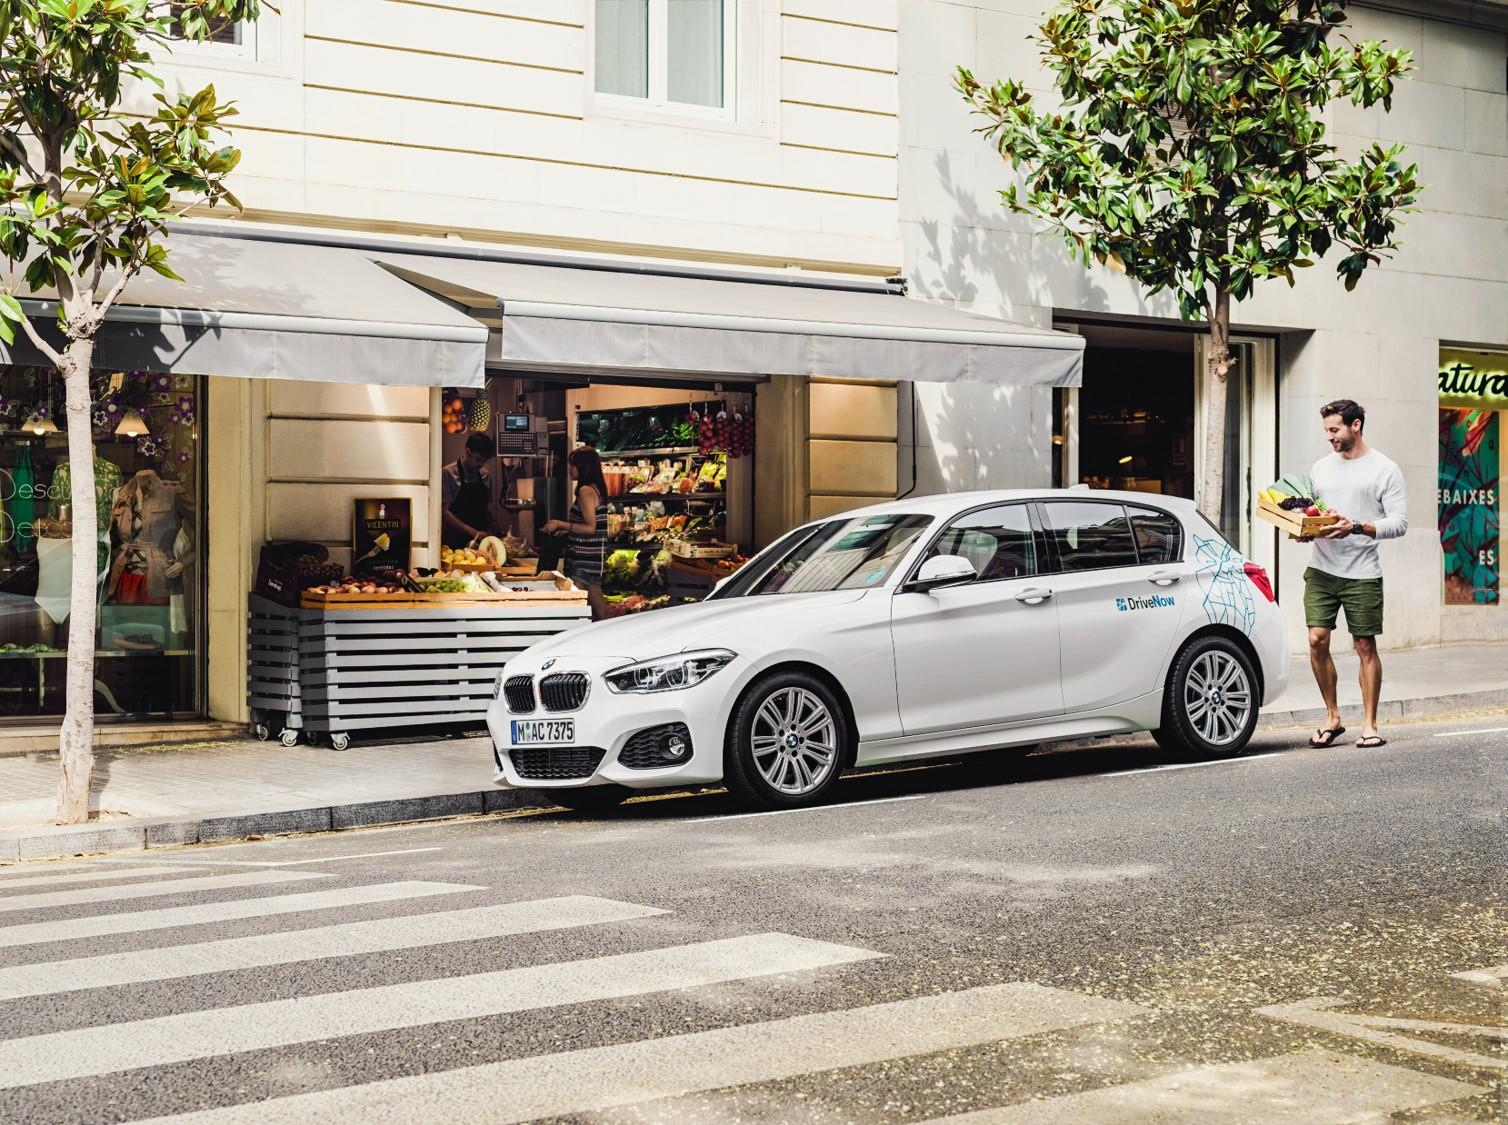 lp_all_bmw_1series_shopping